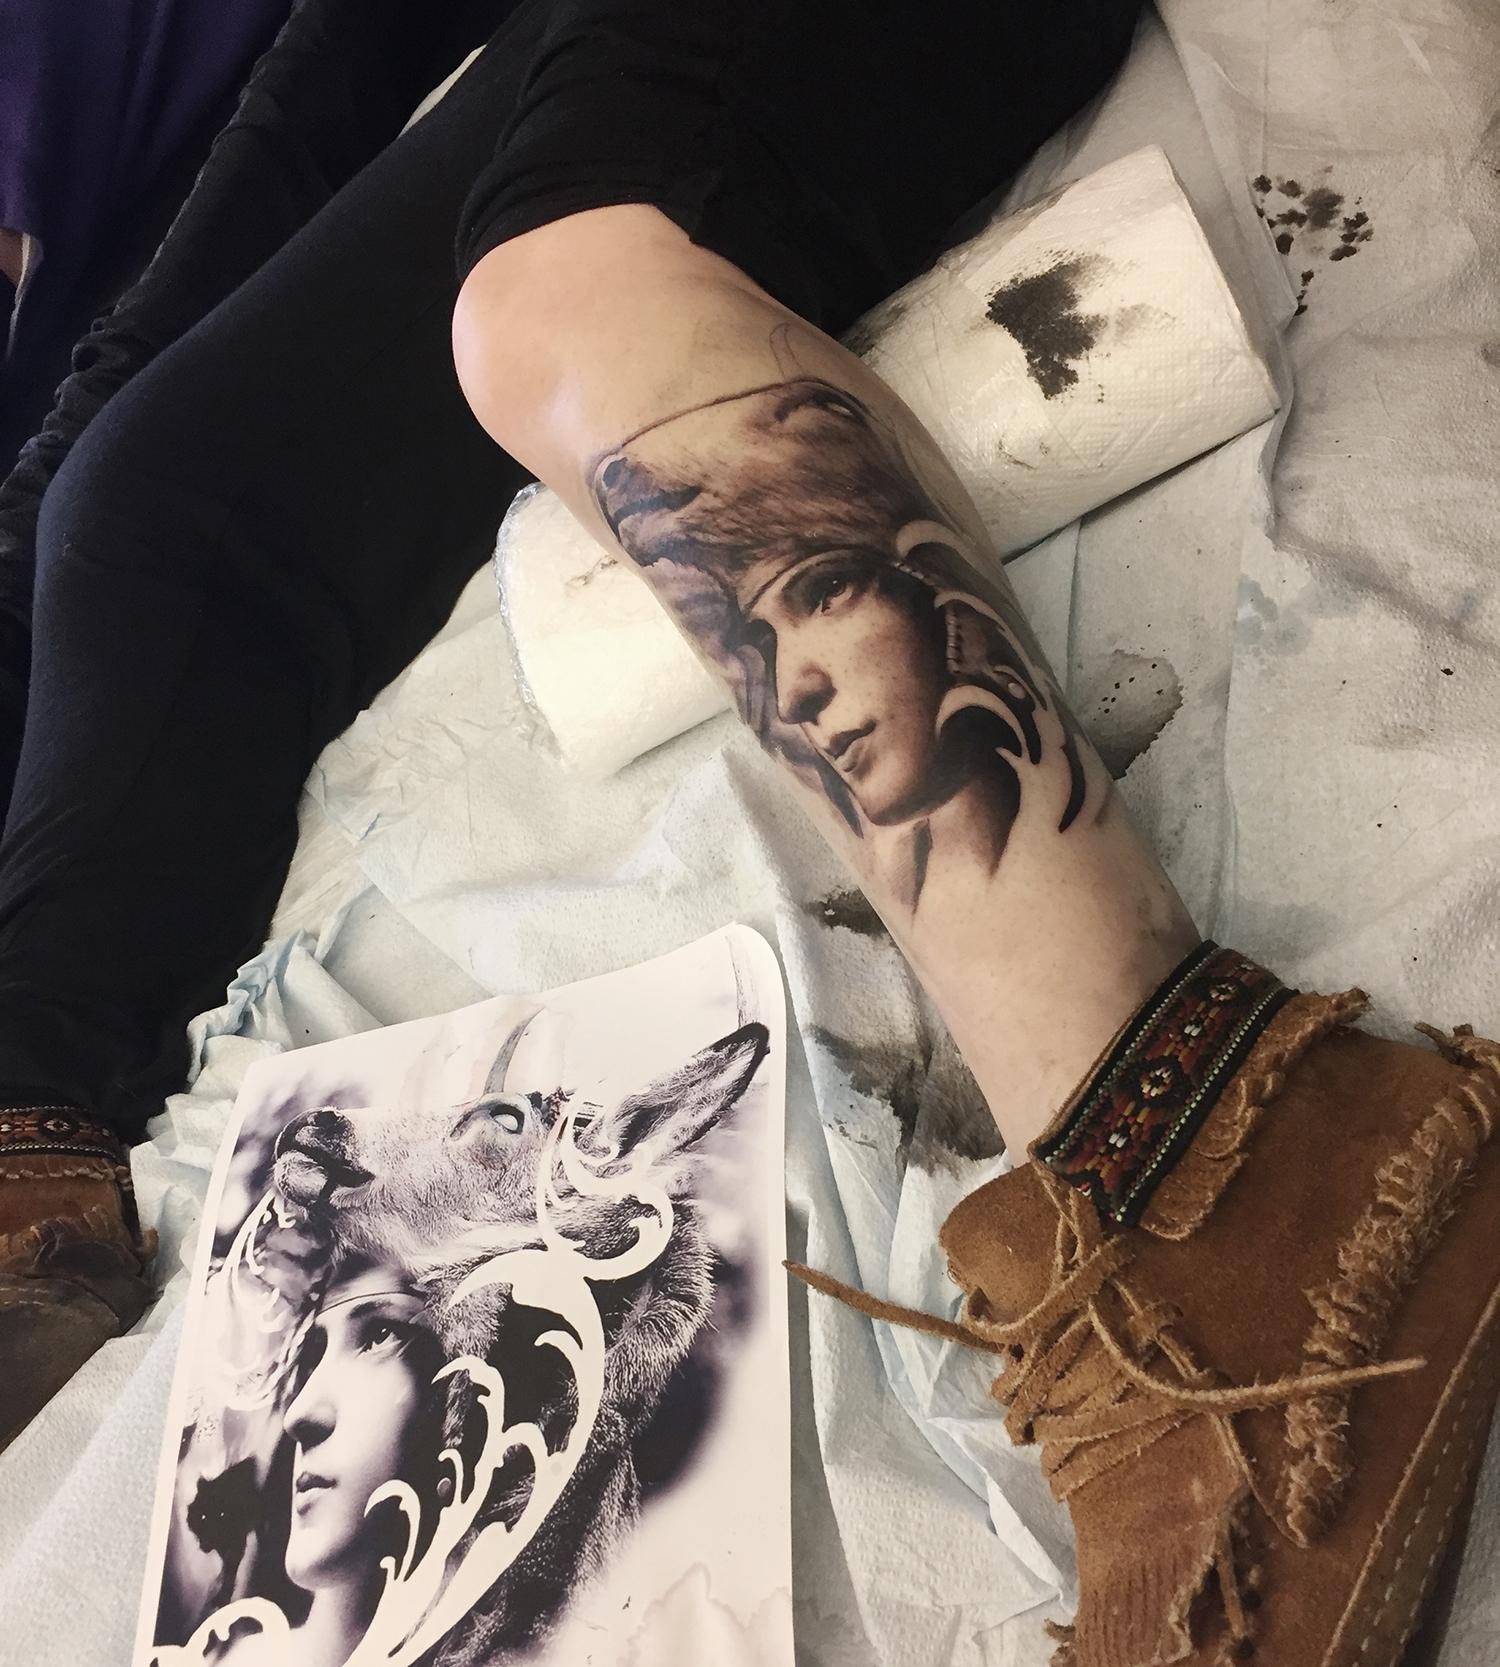 leg tattoo, sheep head and girl portrait, david gluck, tattoo conventions